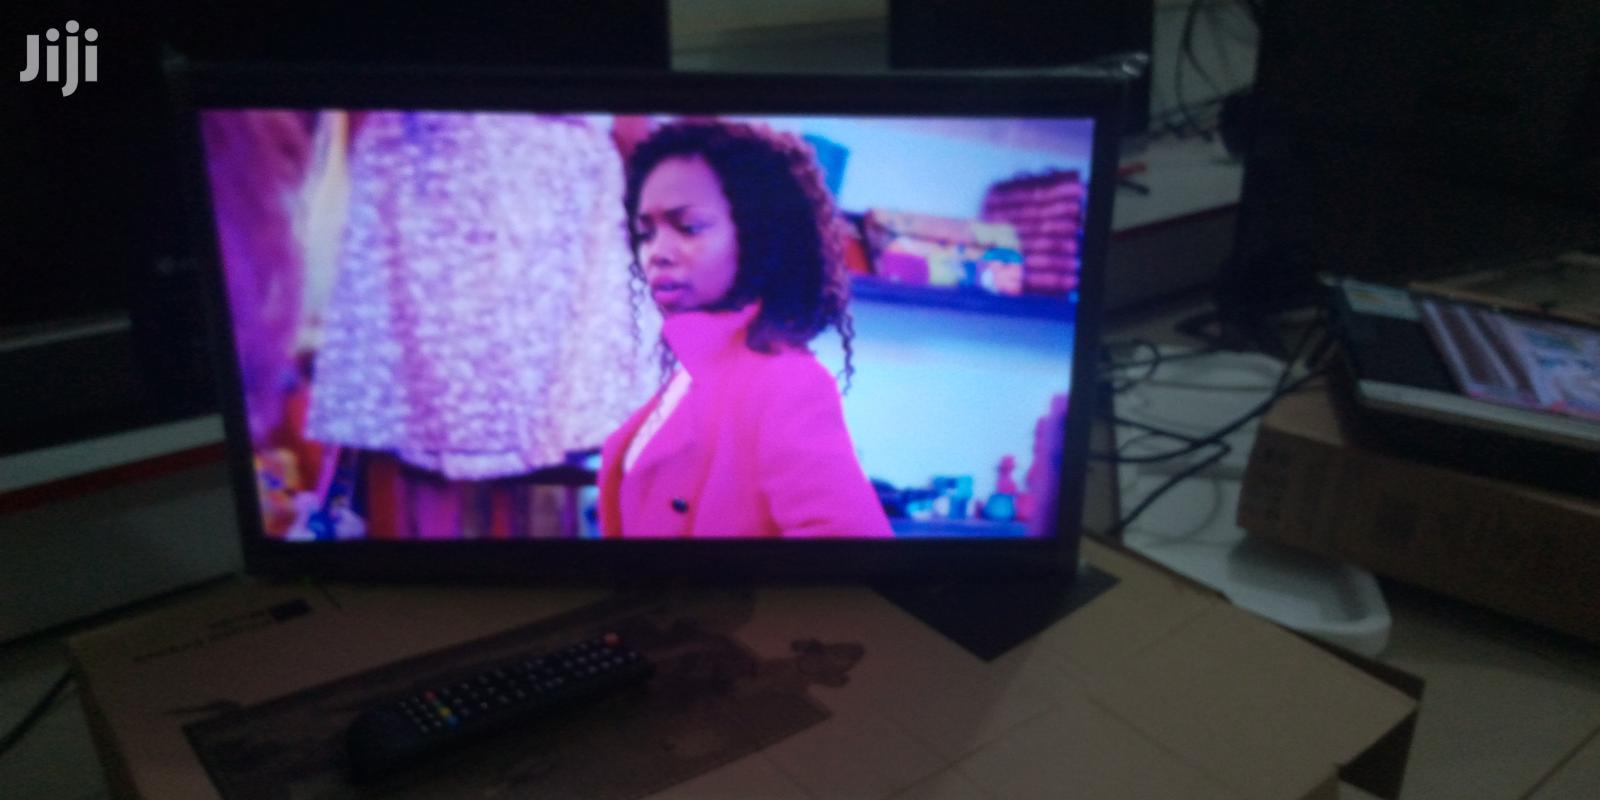 26 Inches Led Lg Flat Screen Digital | TV & DVD Equipment for sale in Kampala, Central Region, Uganda